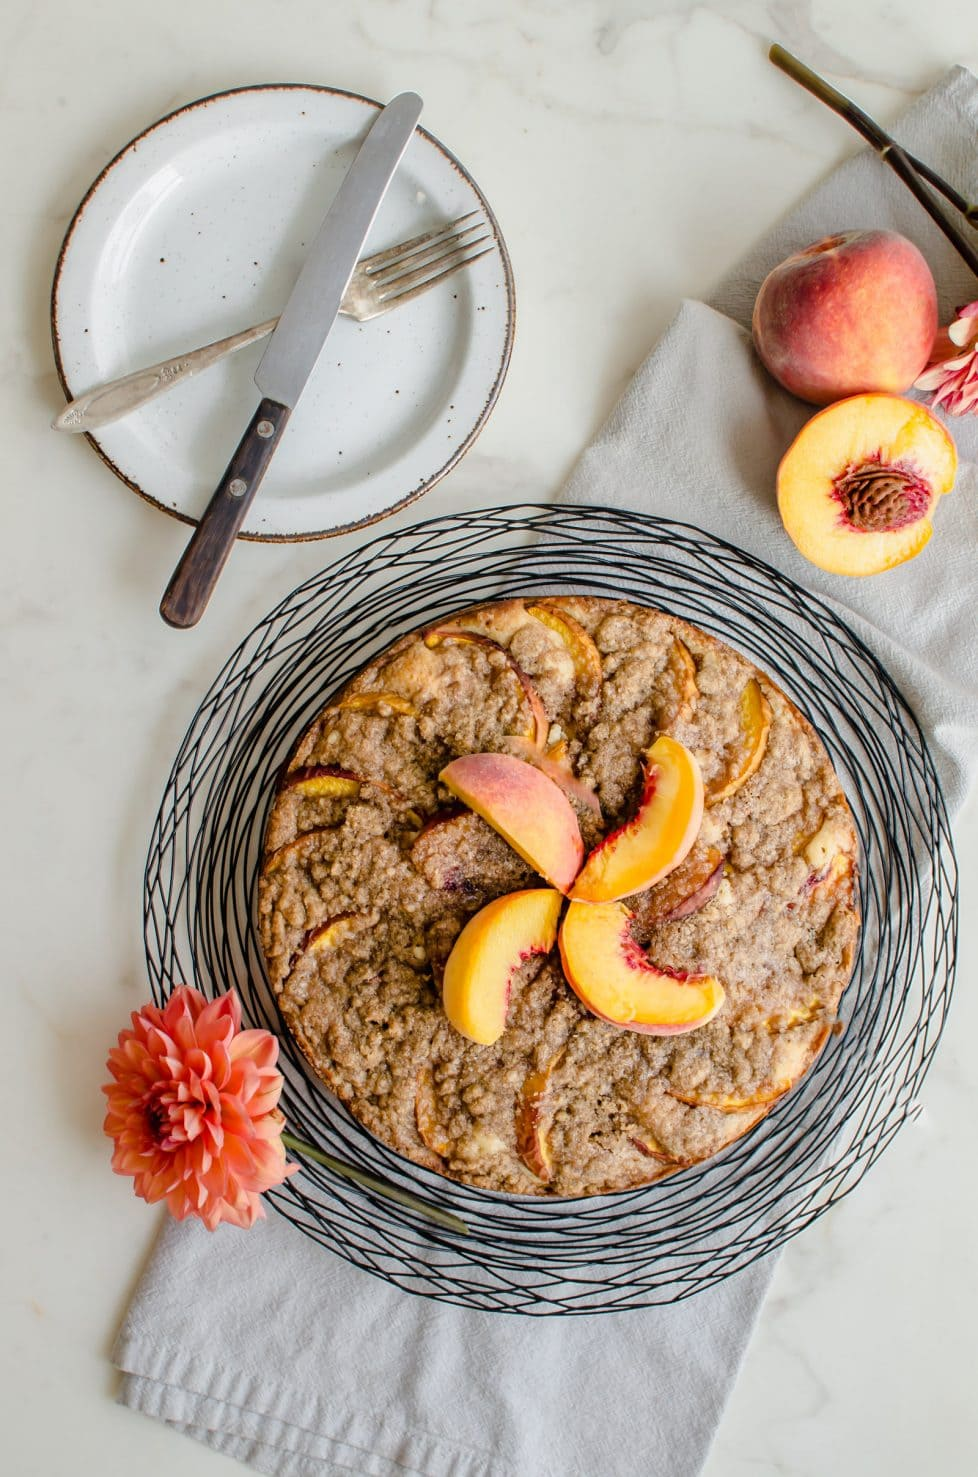 An overhead shot of a peach crumb coffee cake with sliced peaches on top, dahlias and fresh peaches on the side.